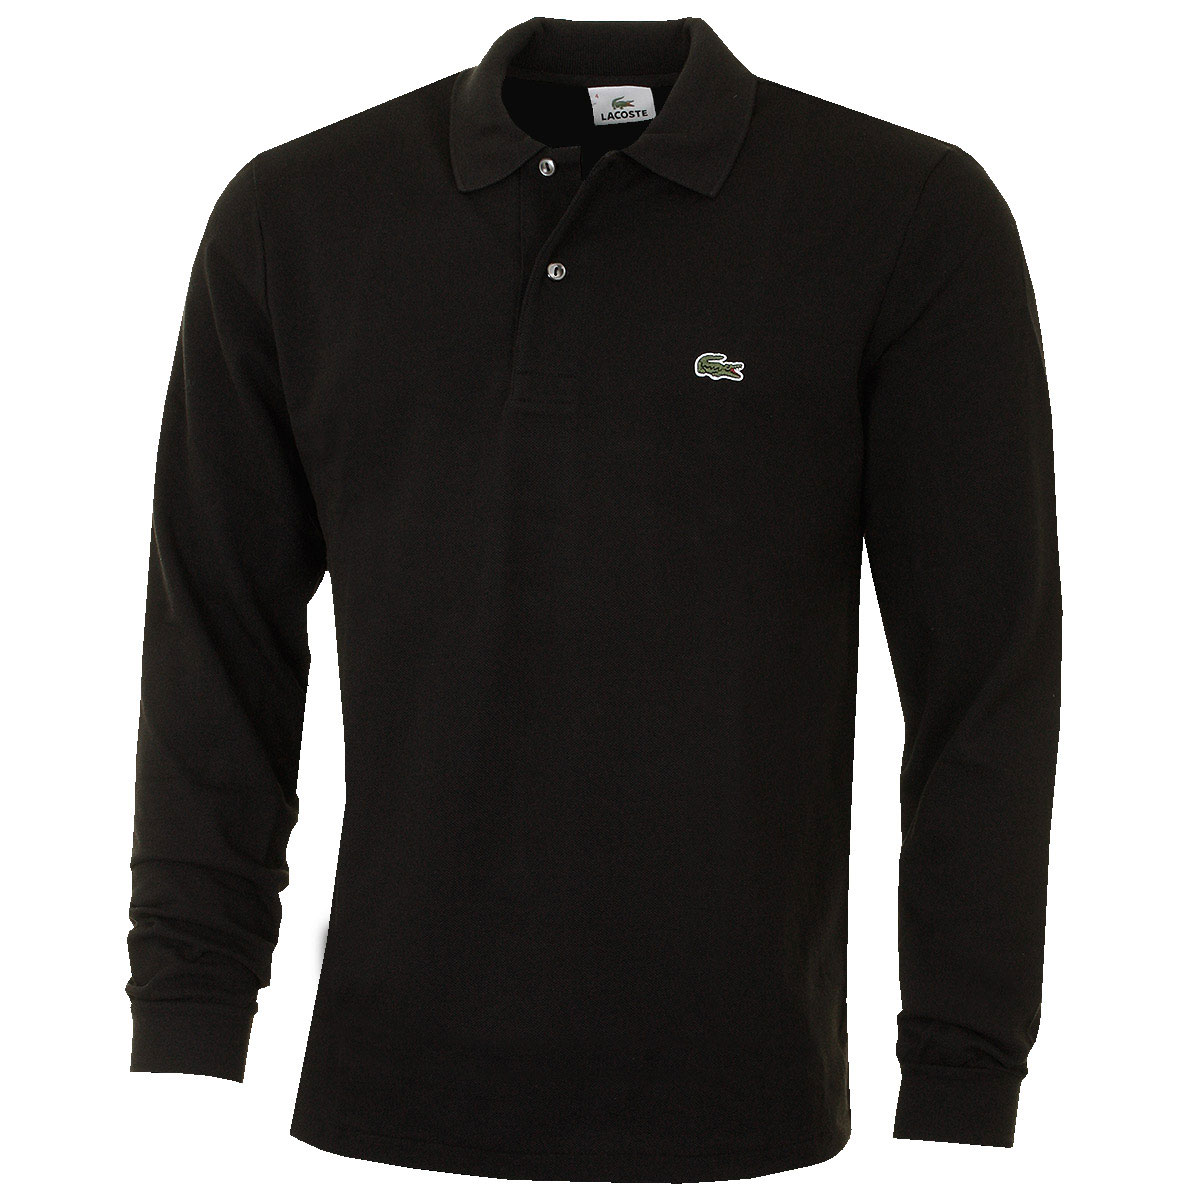 lacoste mens classic cotton long sleeve l1312 polo shirt ebay. Black Bedroom Furniture Sets. Home Design Ideas